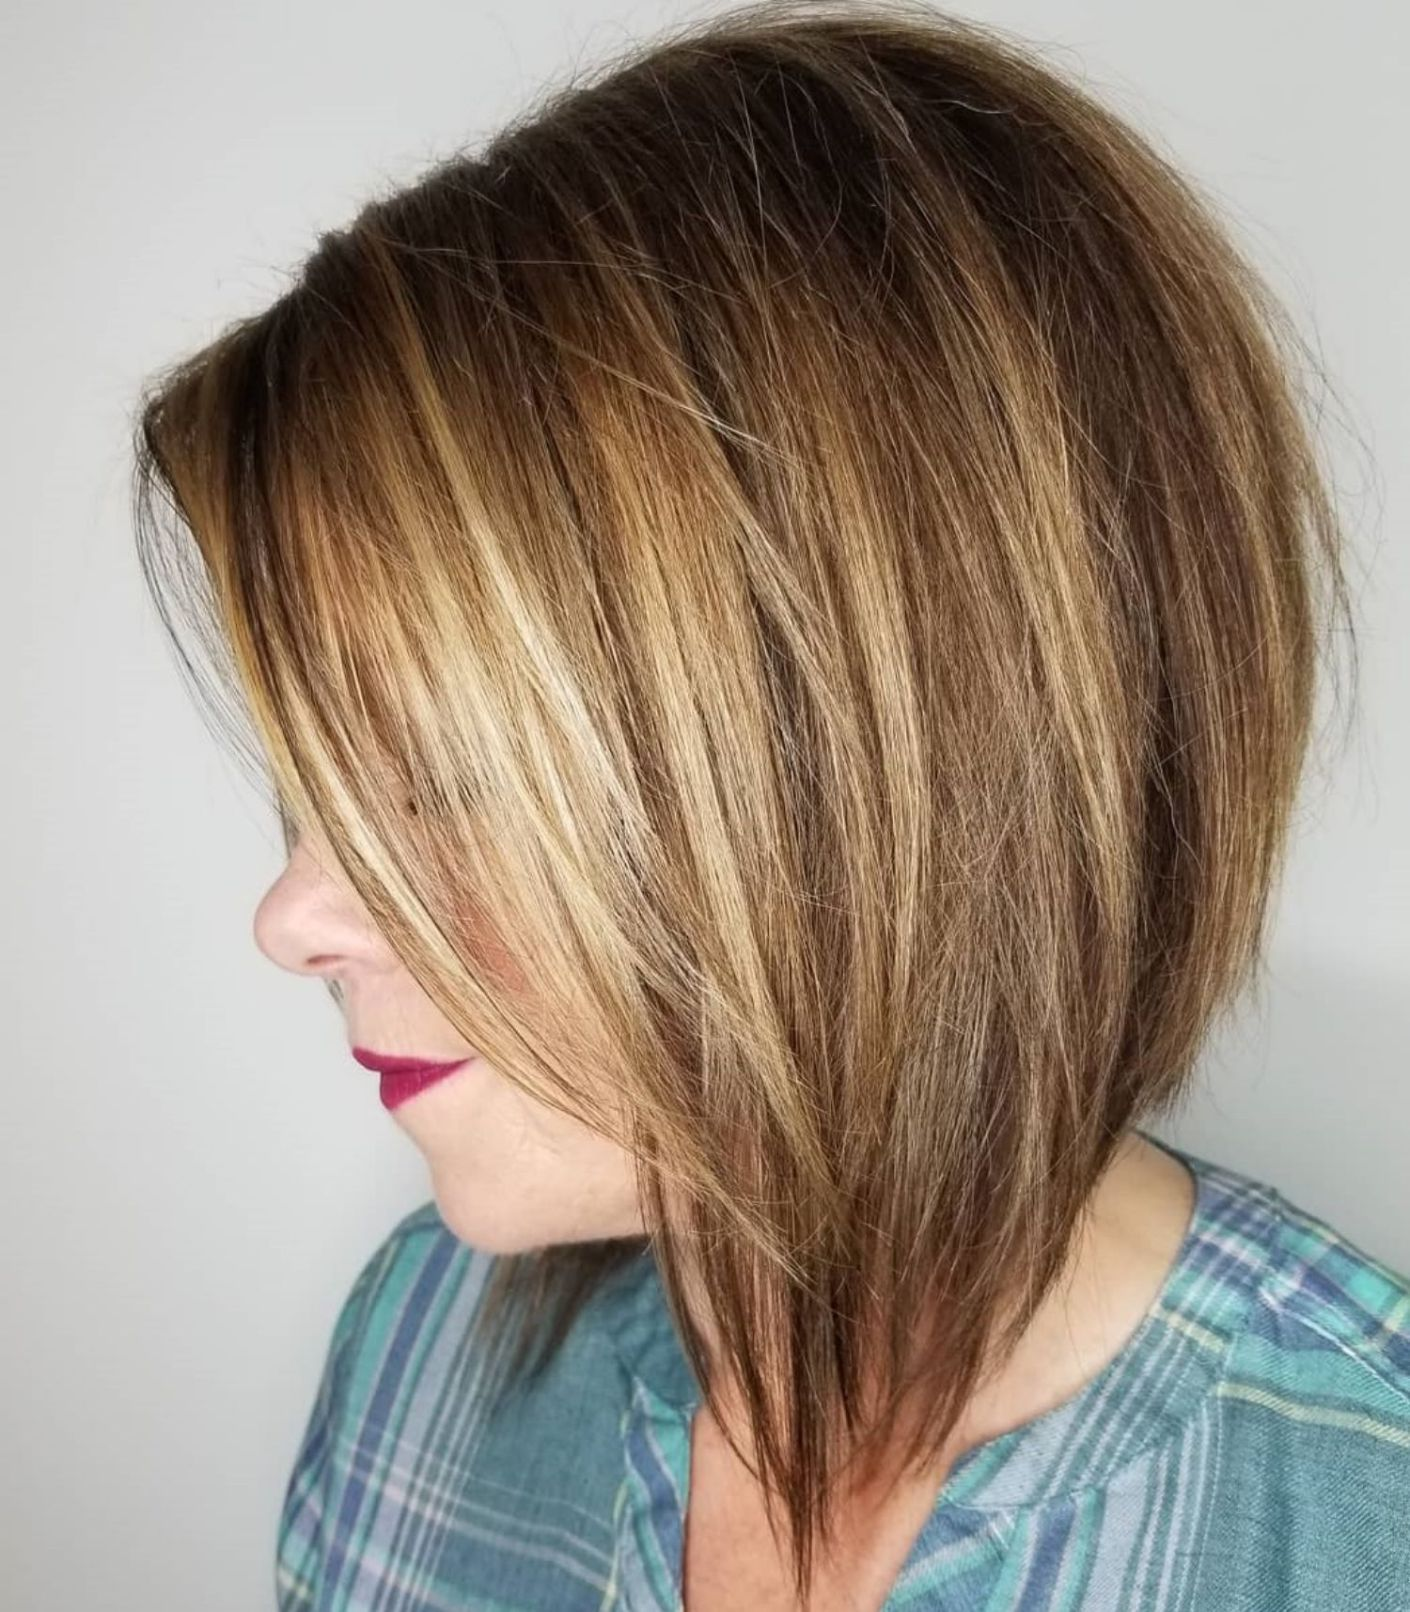 60 Layered Bob Styles: Modern Haircuts with Layers for Any ...